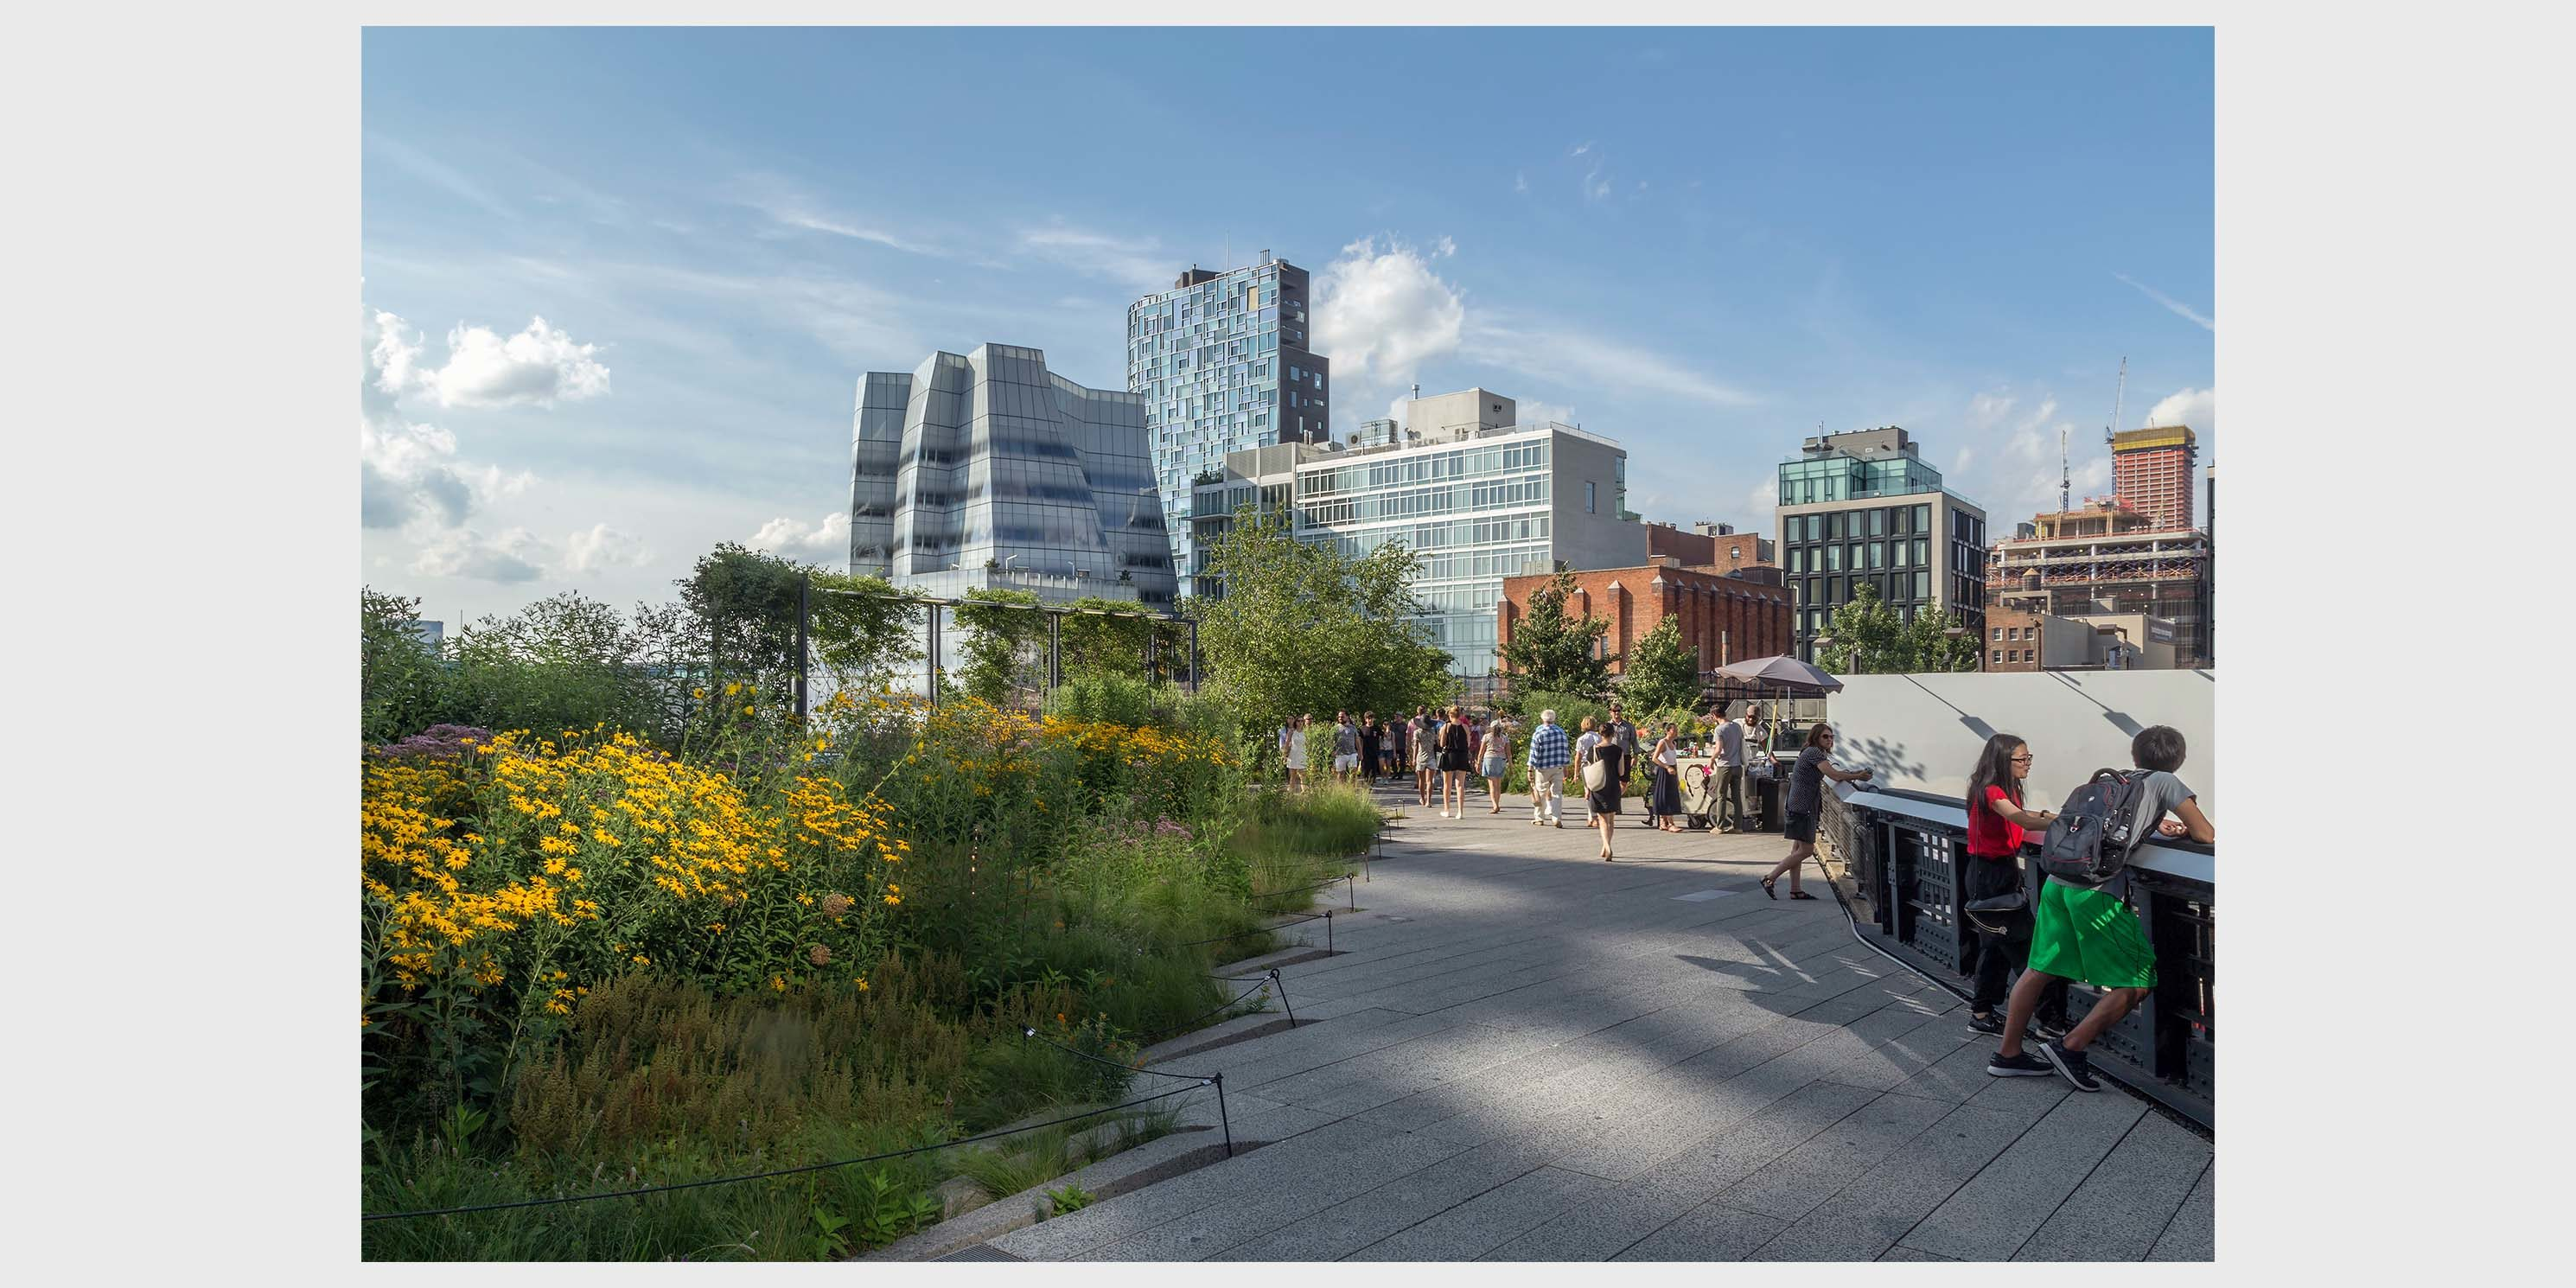 people stroll the Highline with IAC building in background